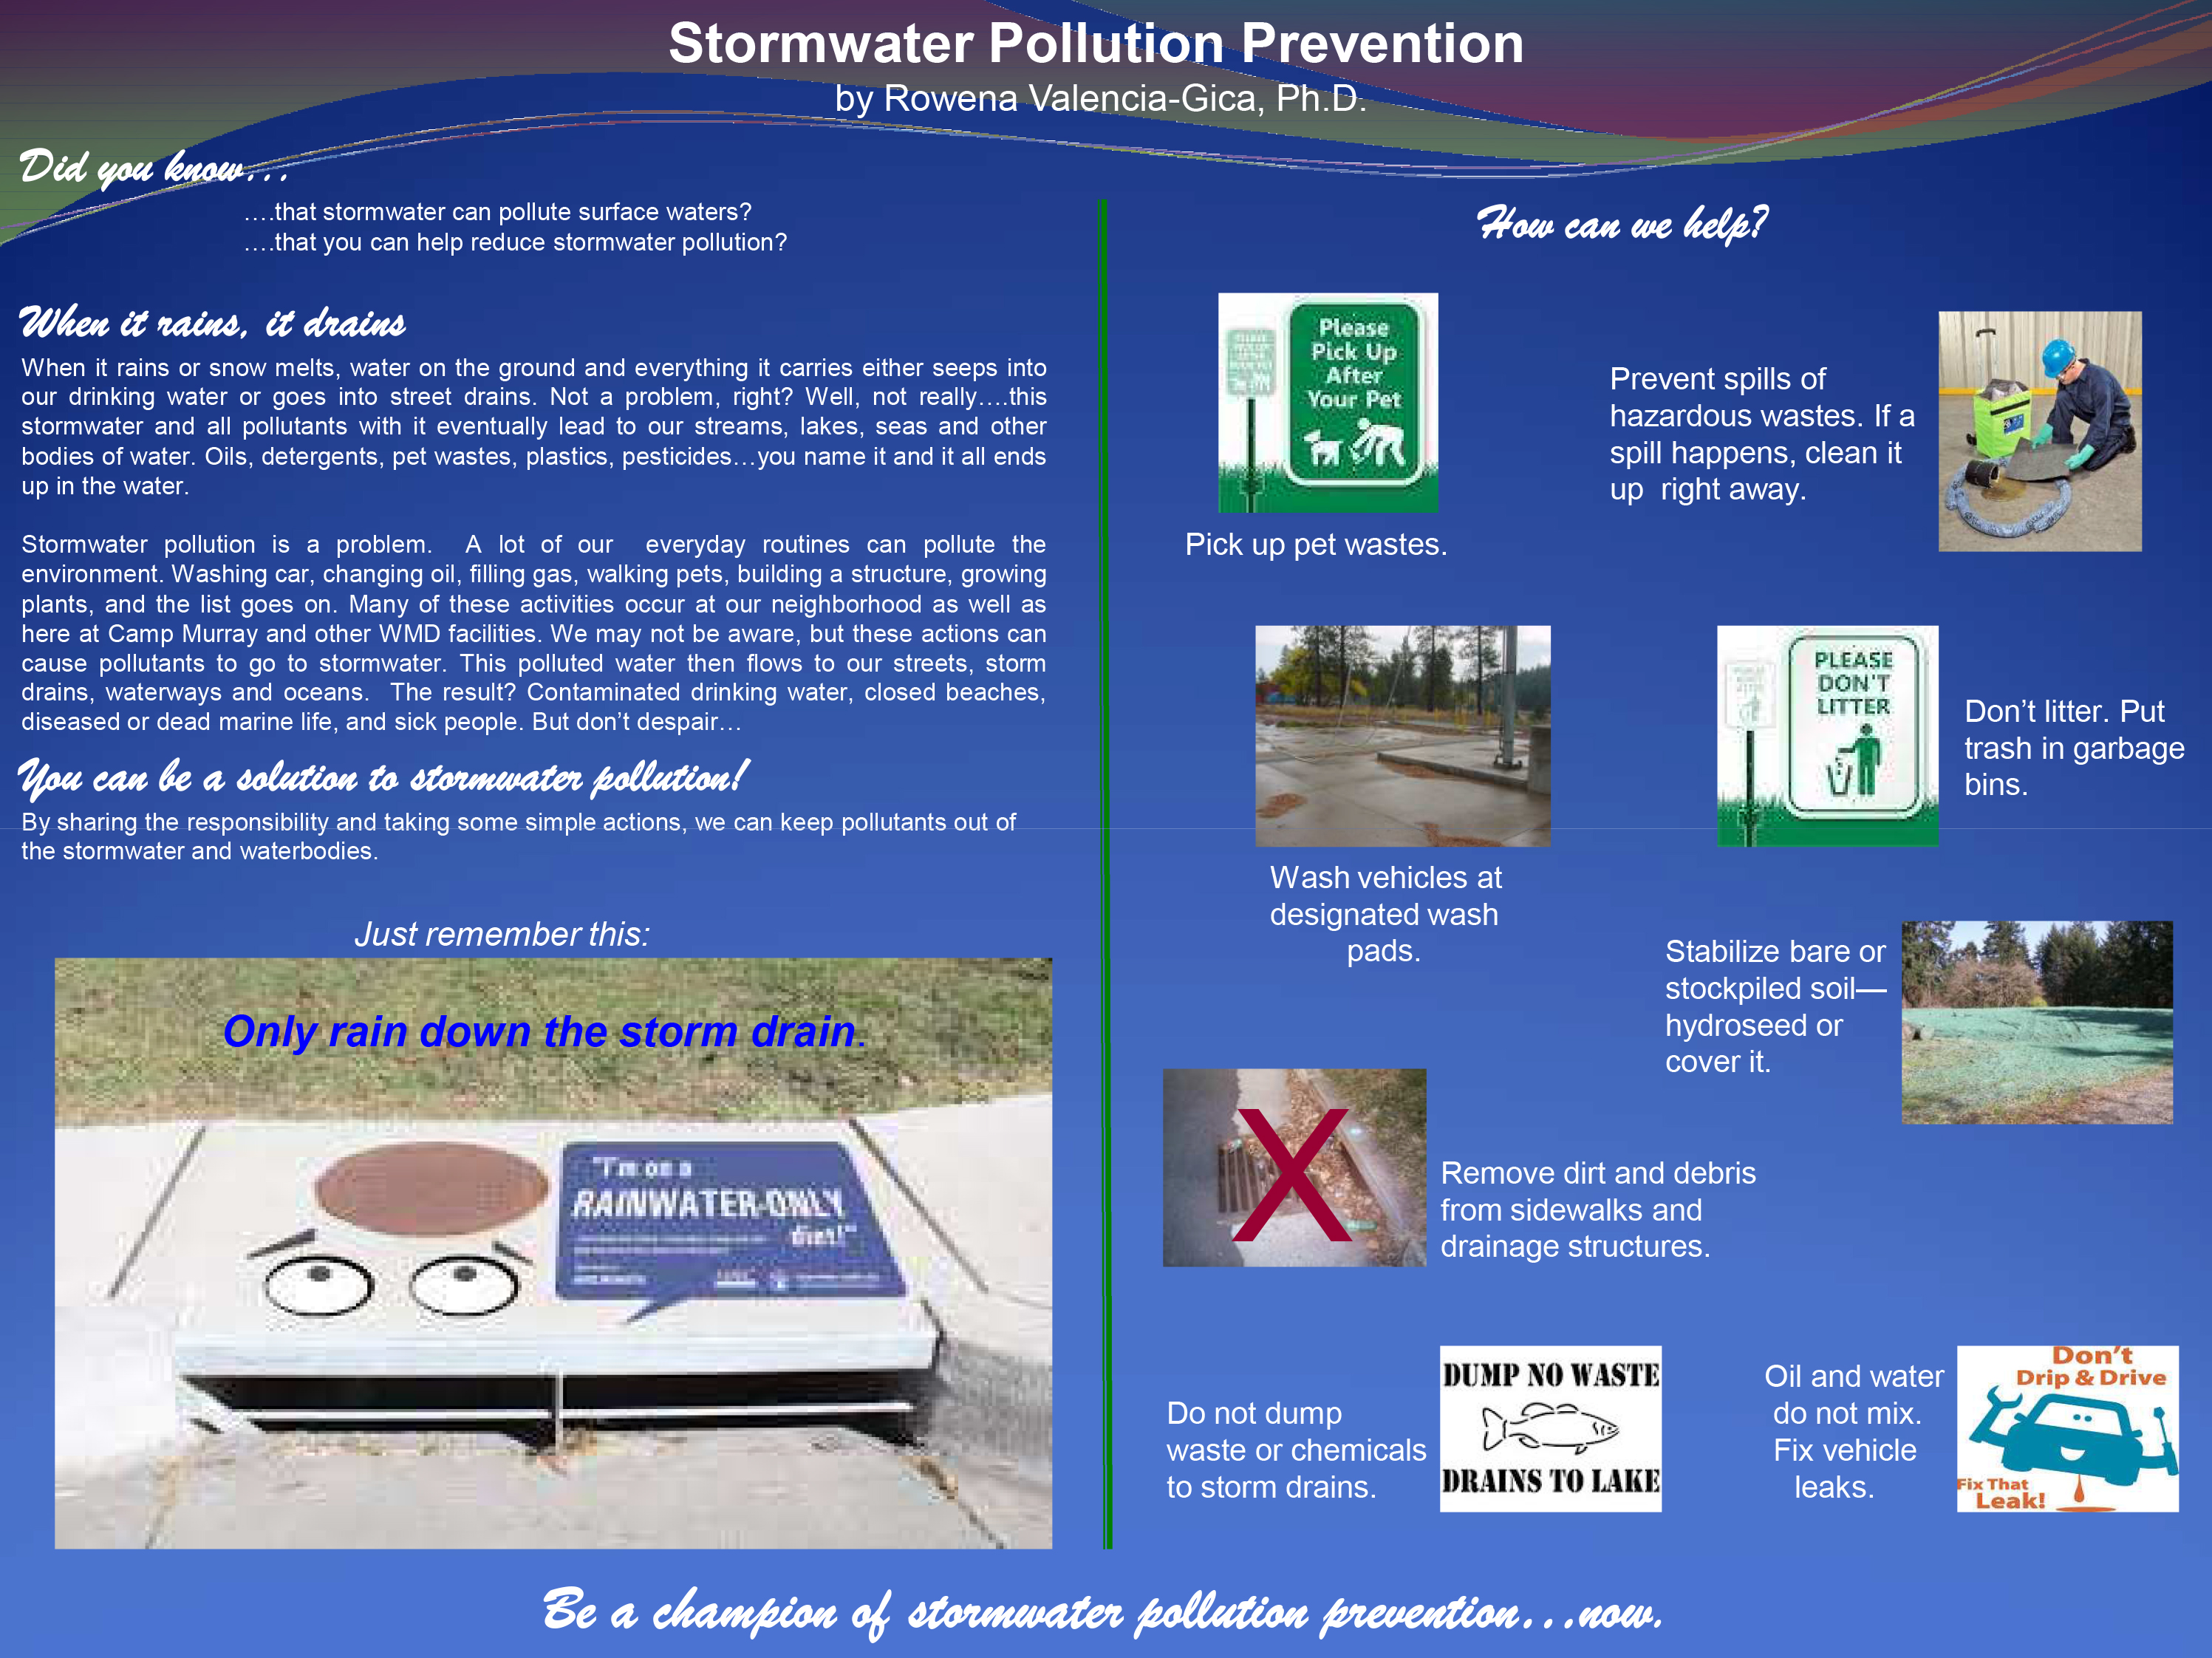 stormwater_article_wmd_staff_20140205.jpg